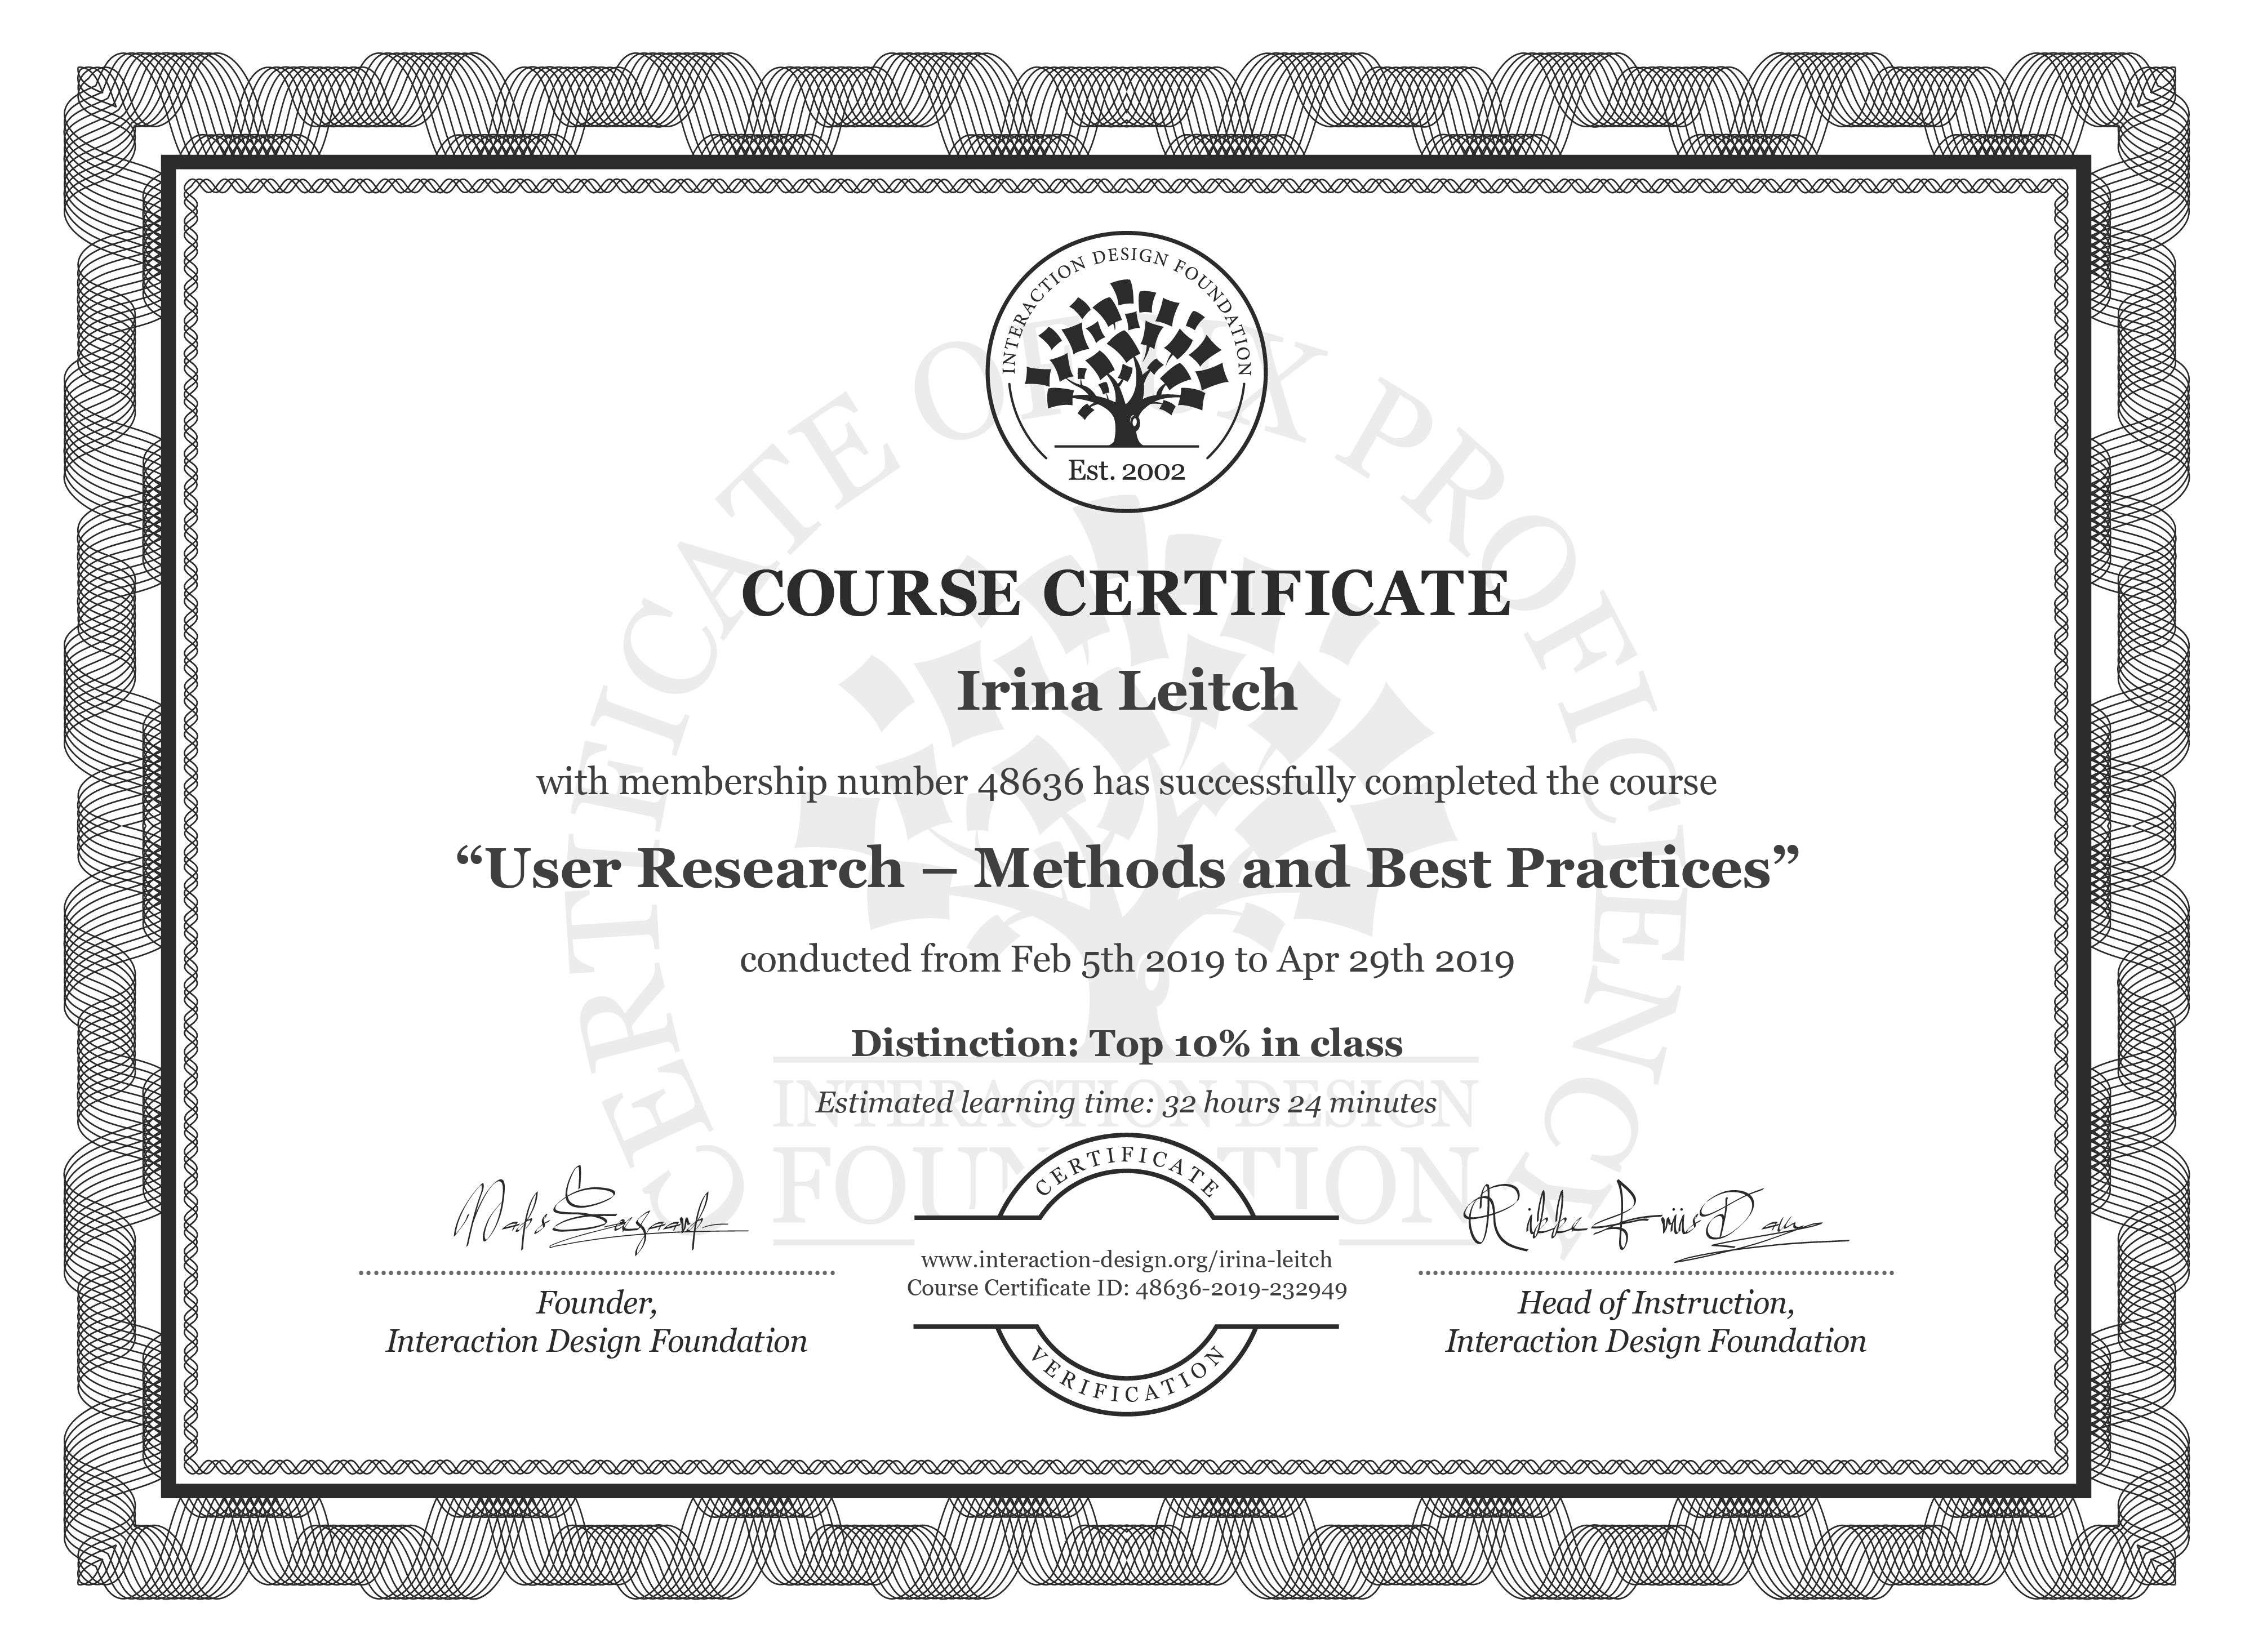 Irina Leitch's Course Certificate: User Research – Methods and Best Practices